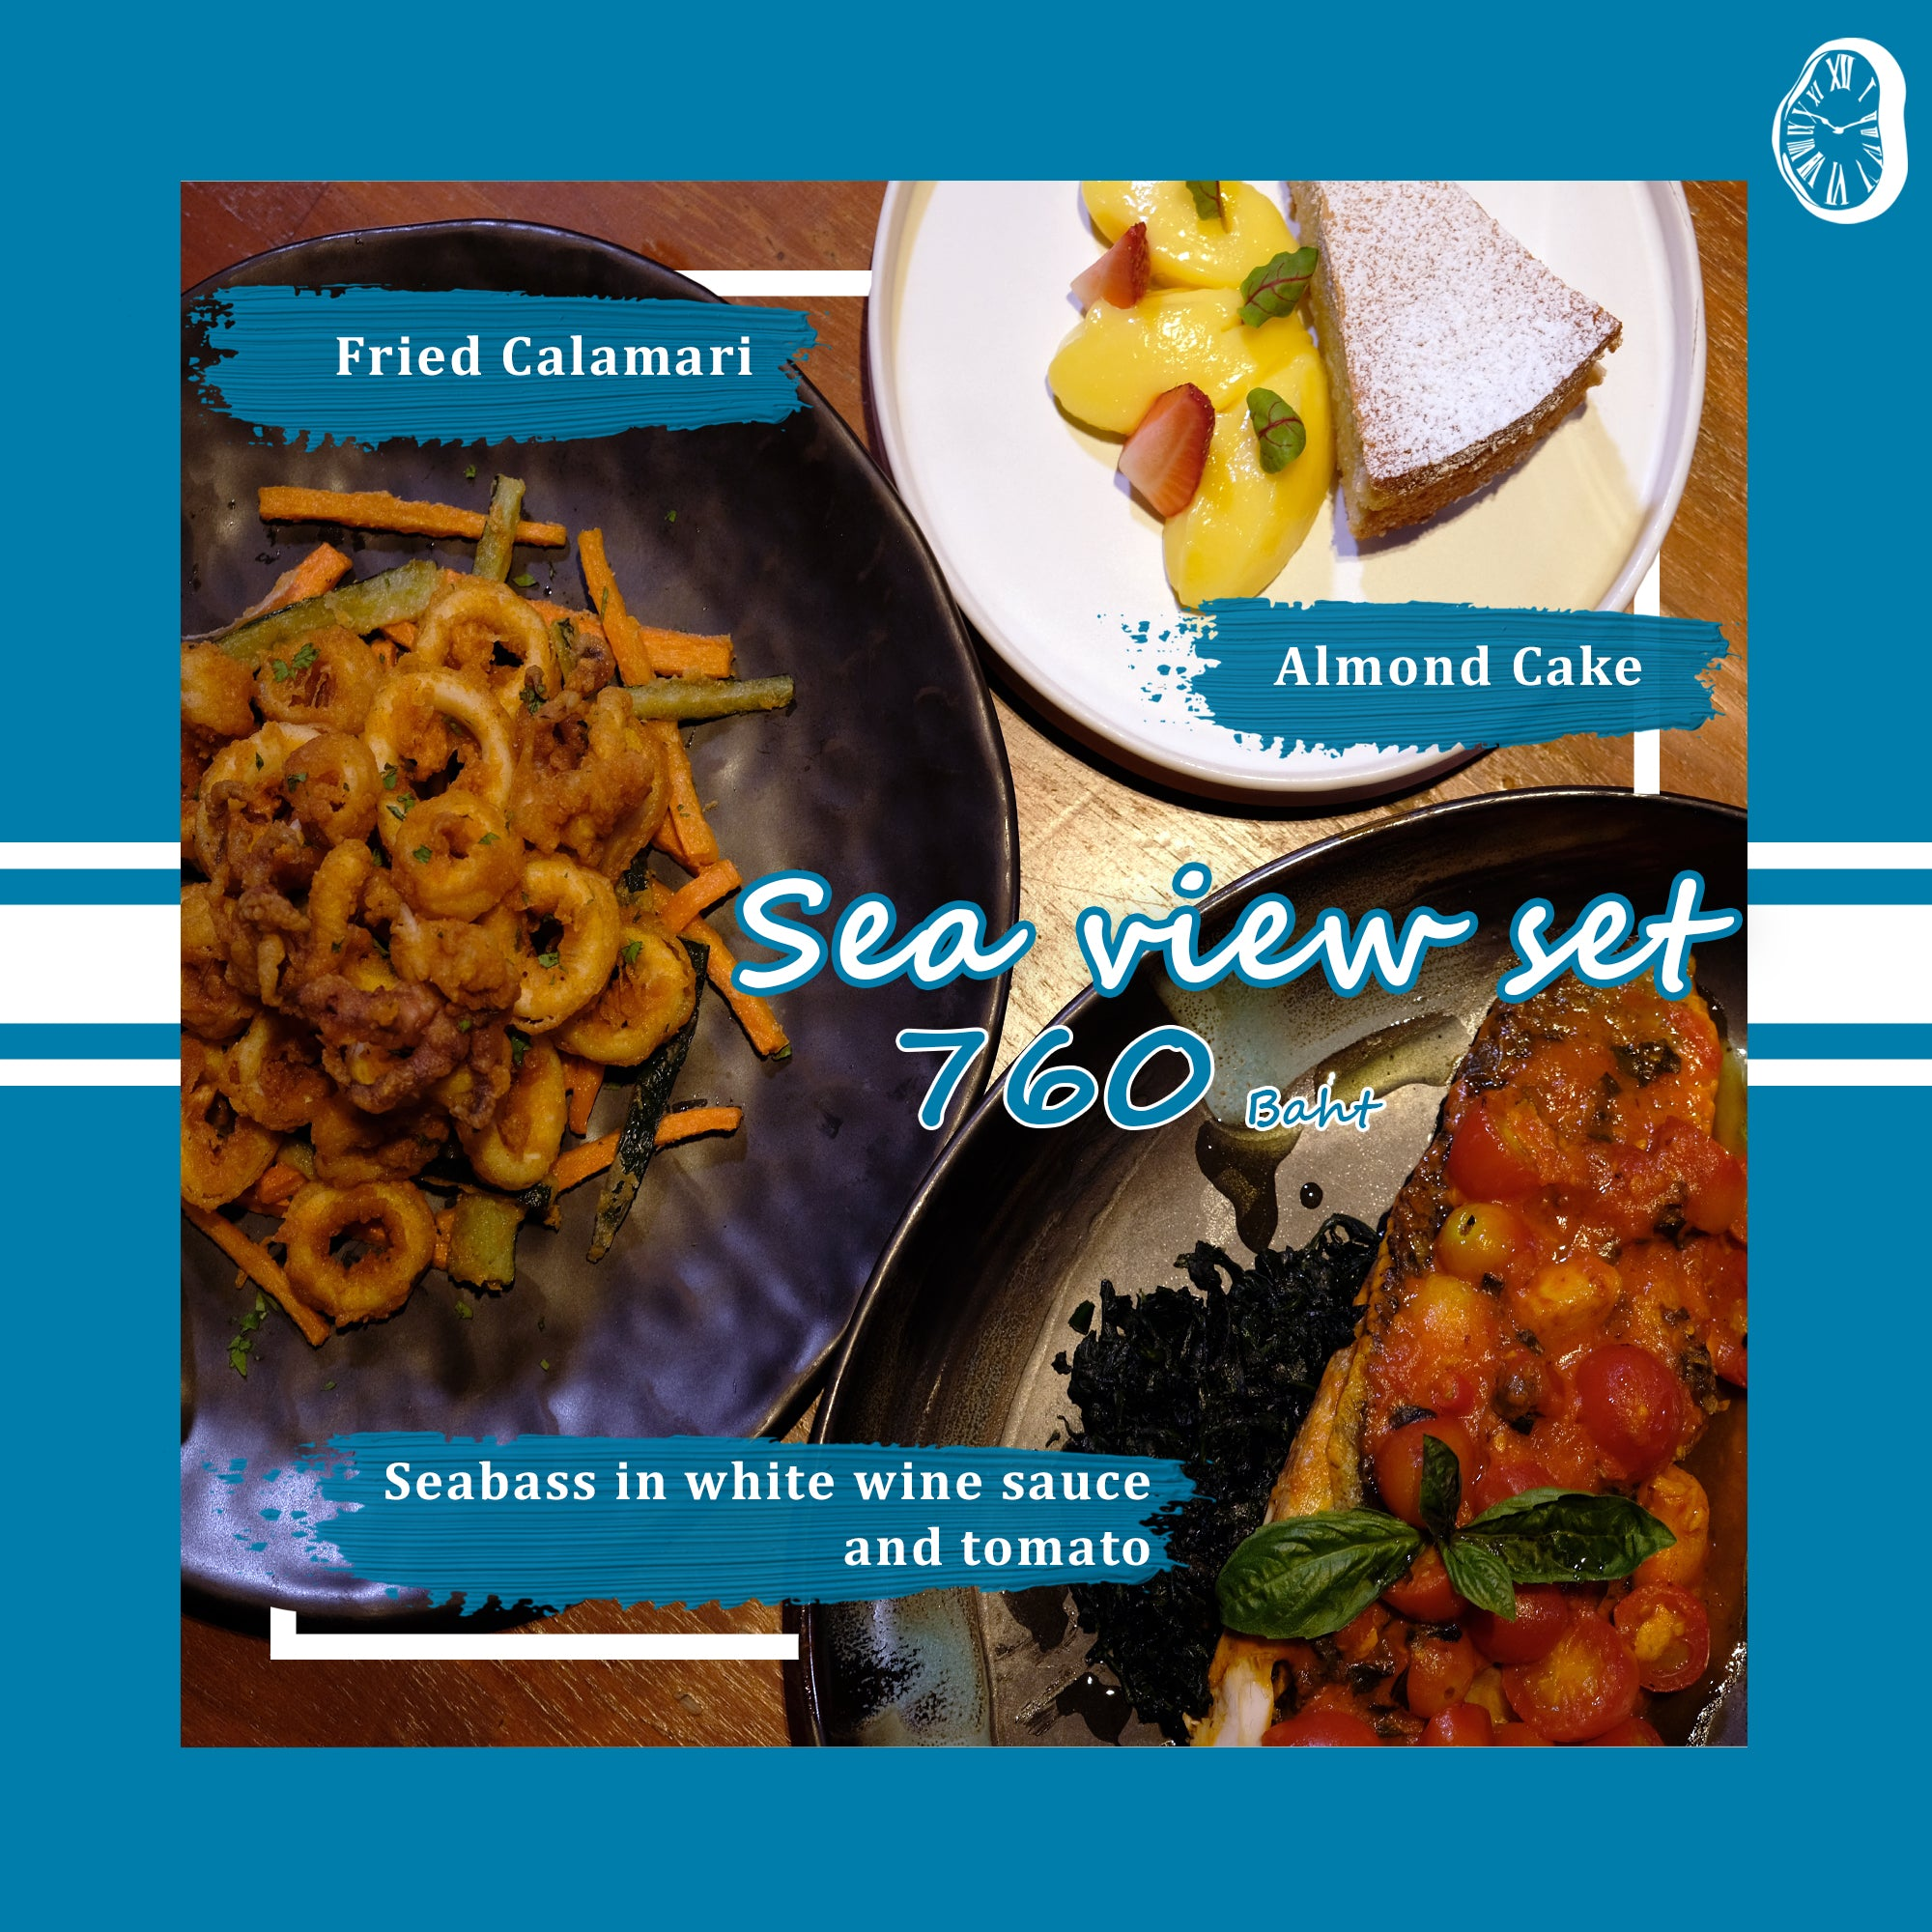 SEA VIEW - SET MENU